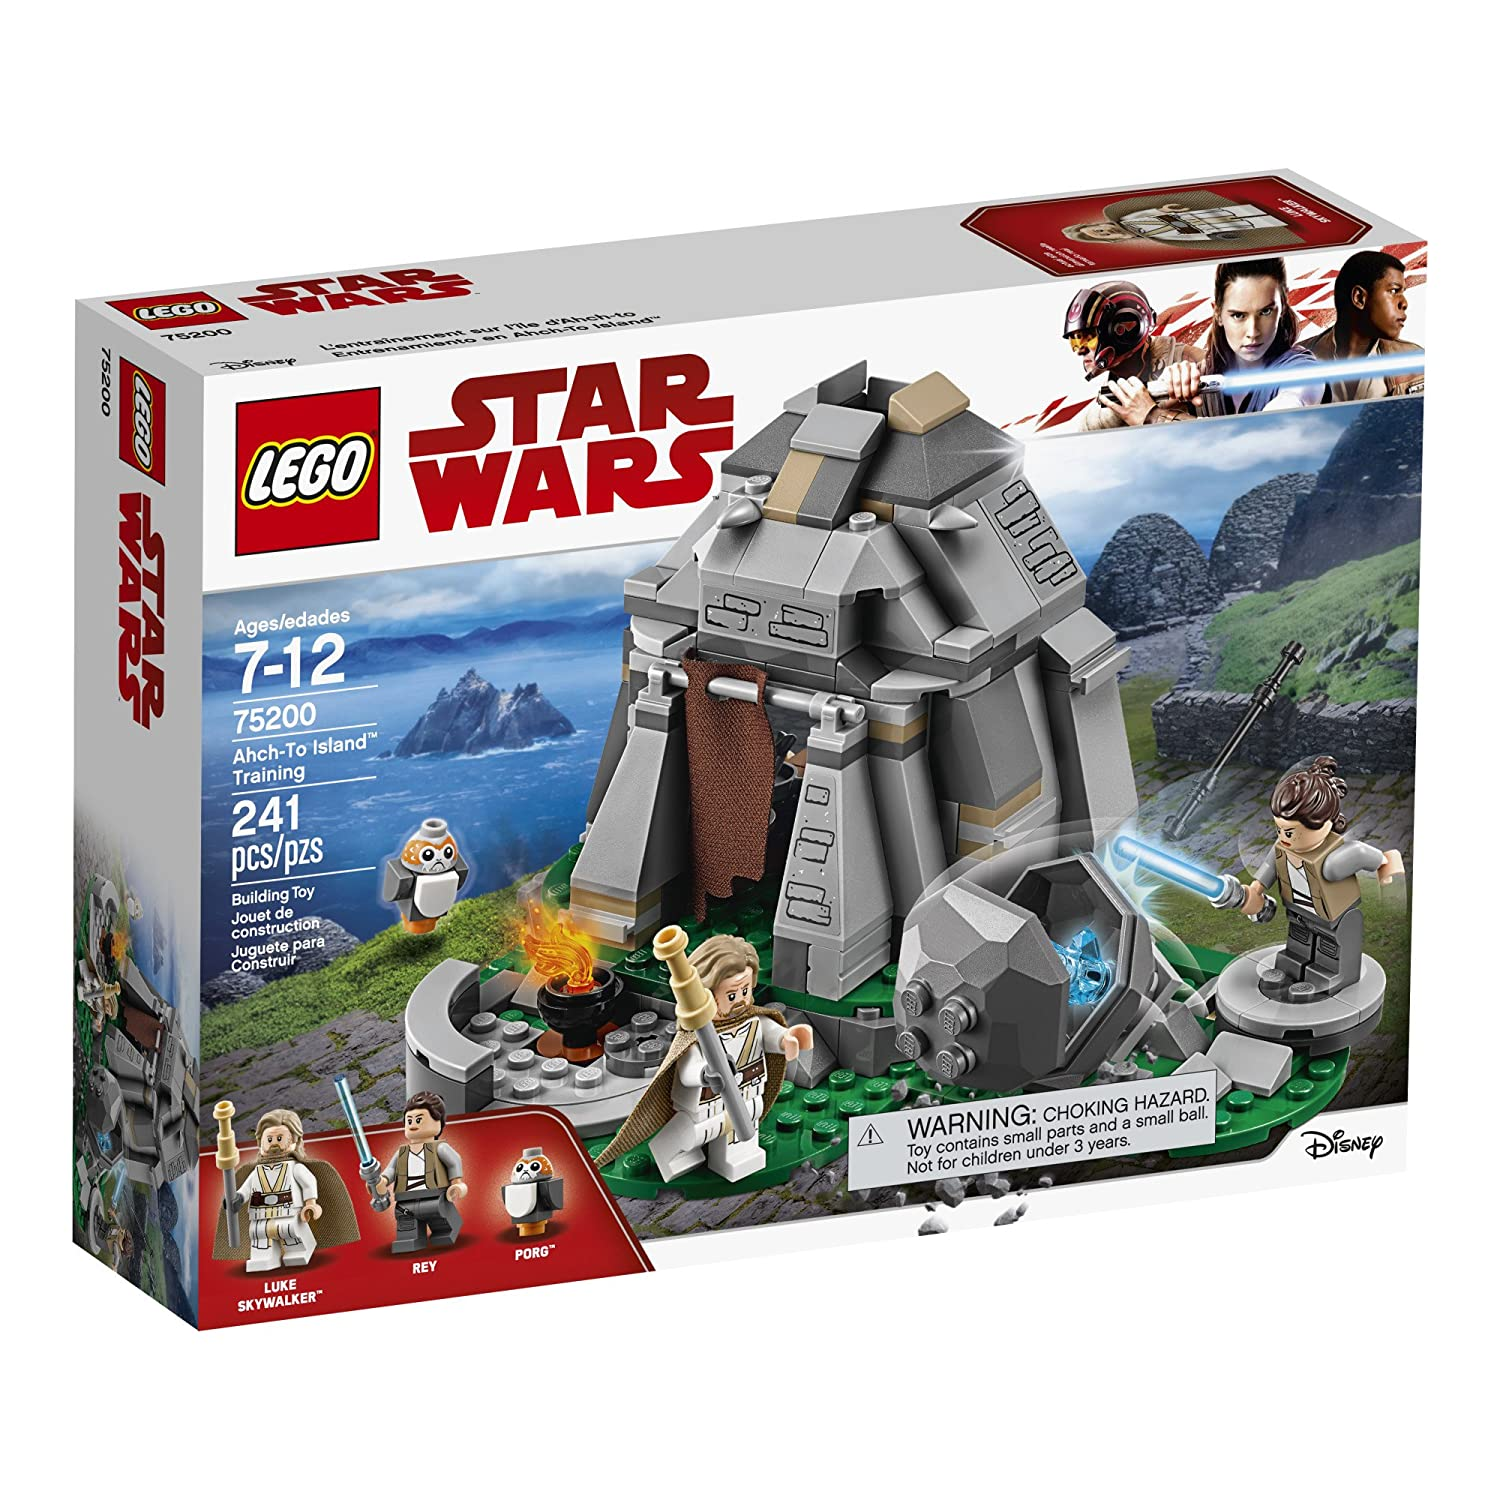 lego star wars 2018 amazon sales the brick fan. Black Bedroom Furniture Sets. Home Design Ideas